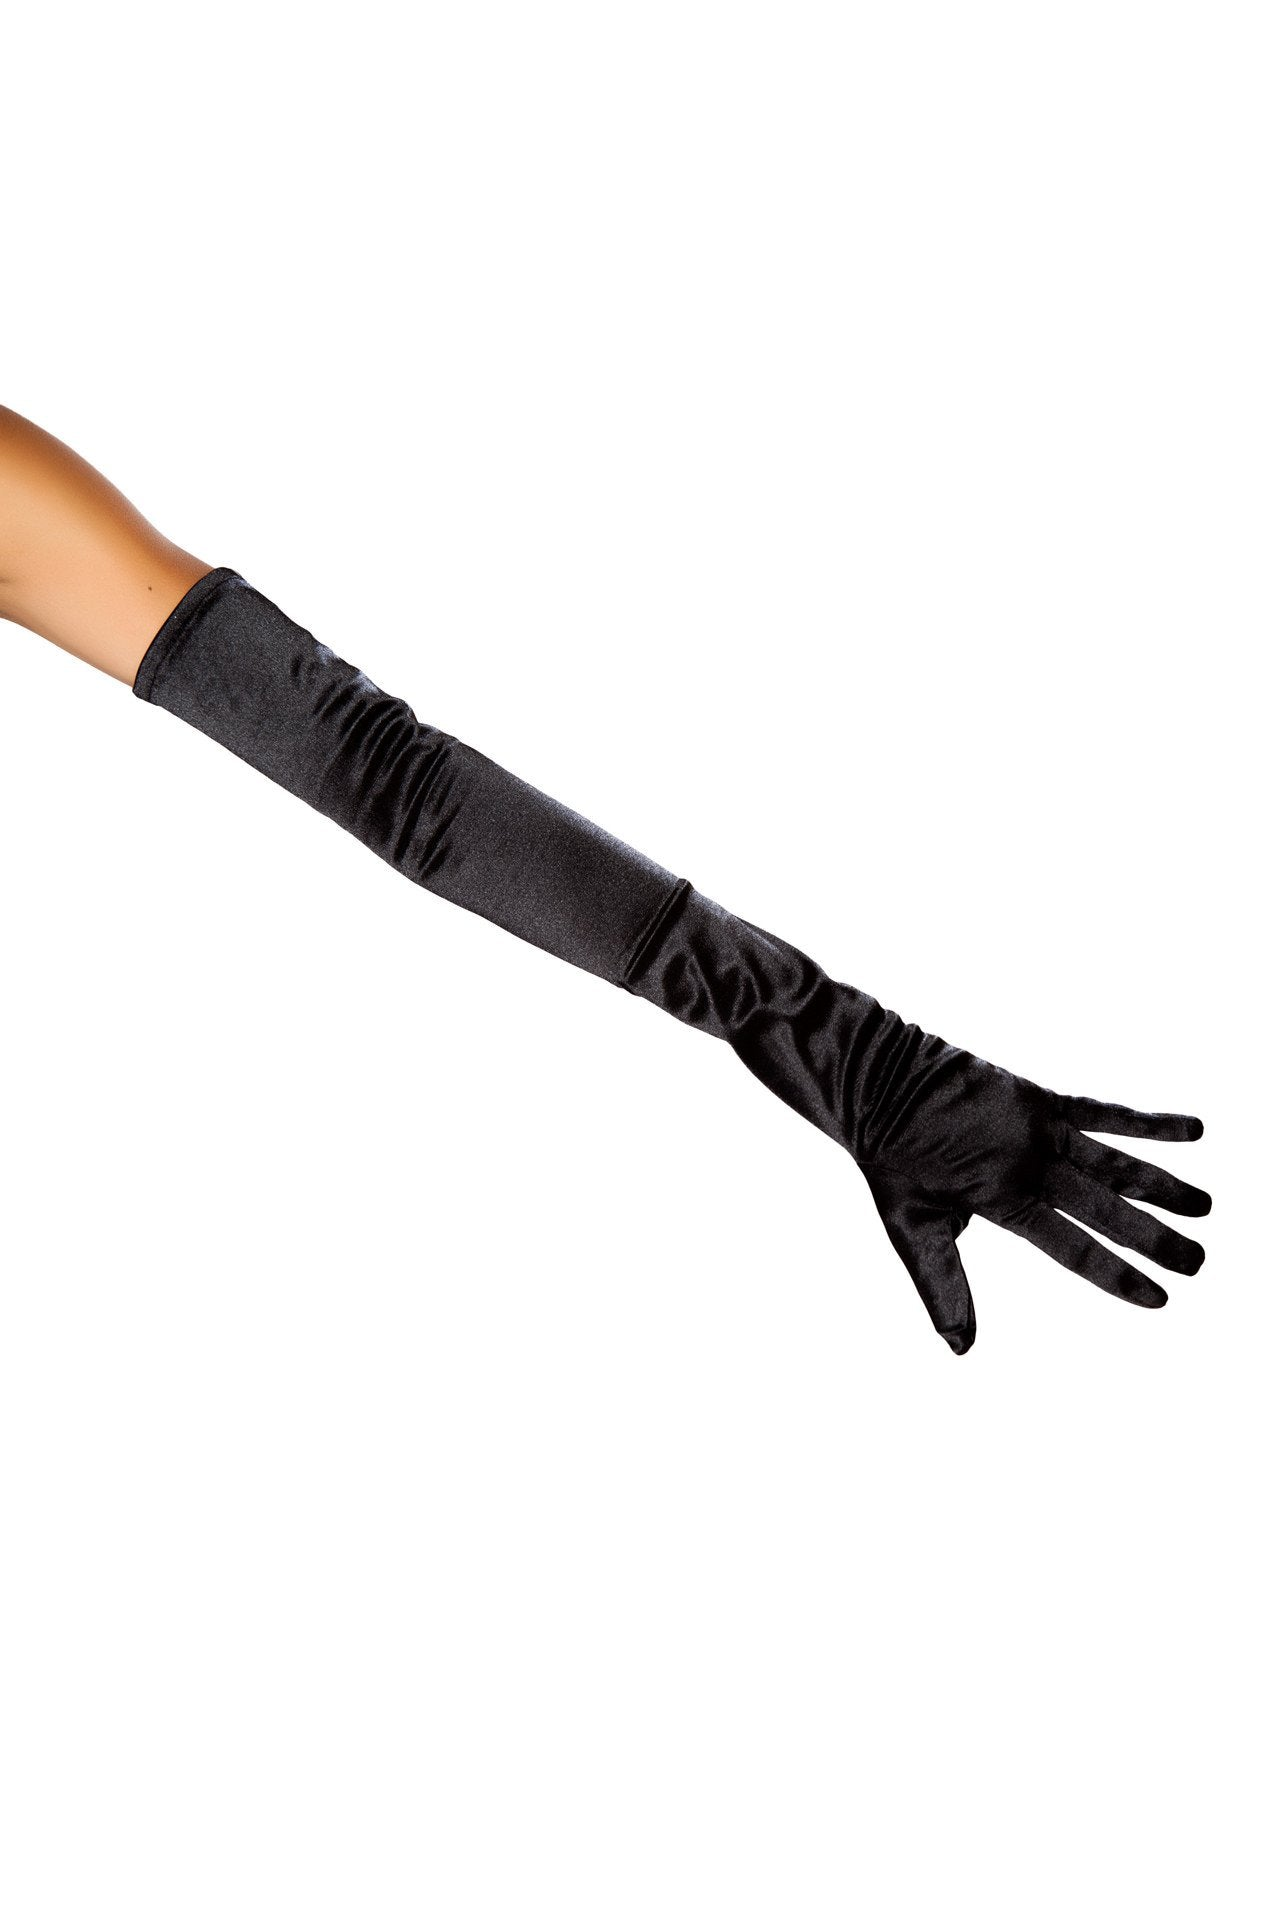 Buy Stretch Satin Gloves from Rave Fix for $5.62 with Same Day Shipping Designed by Roma Costume 10104-Blk-O/S